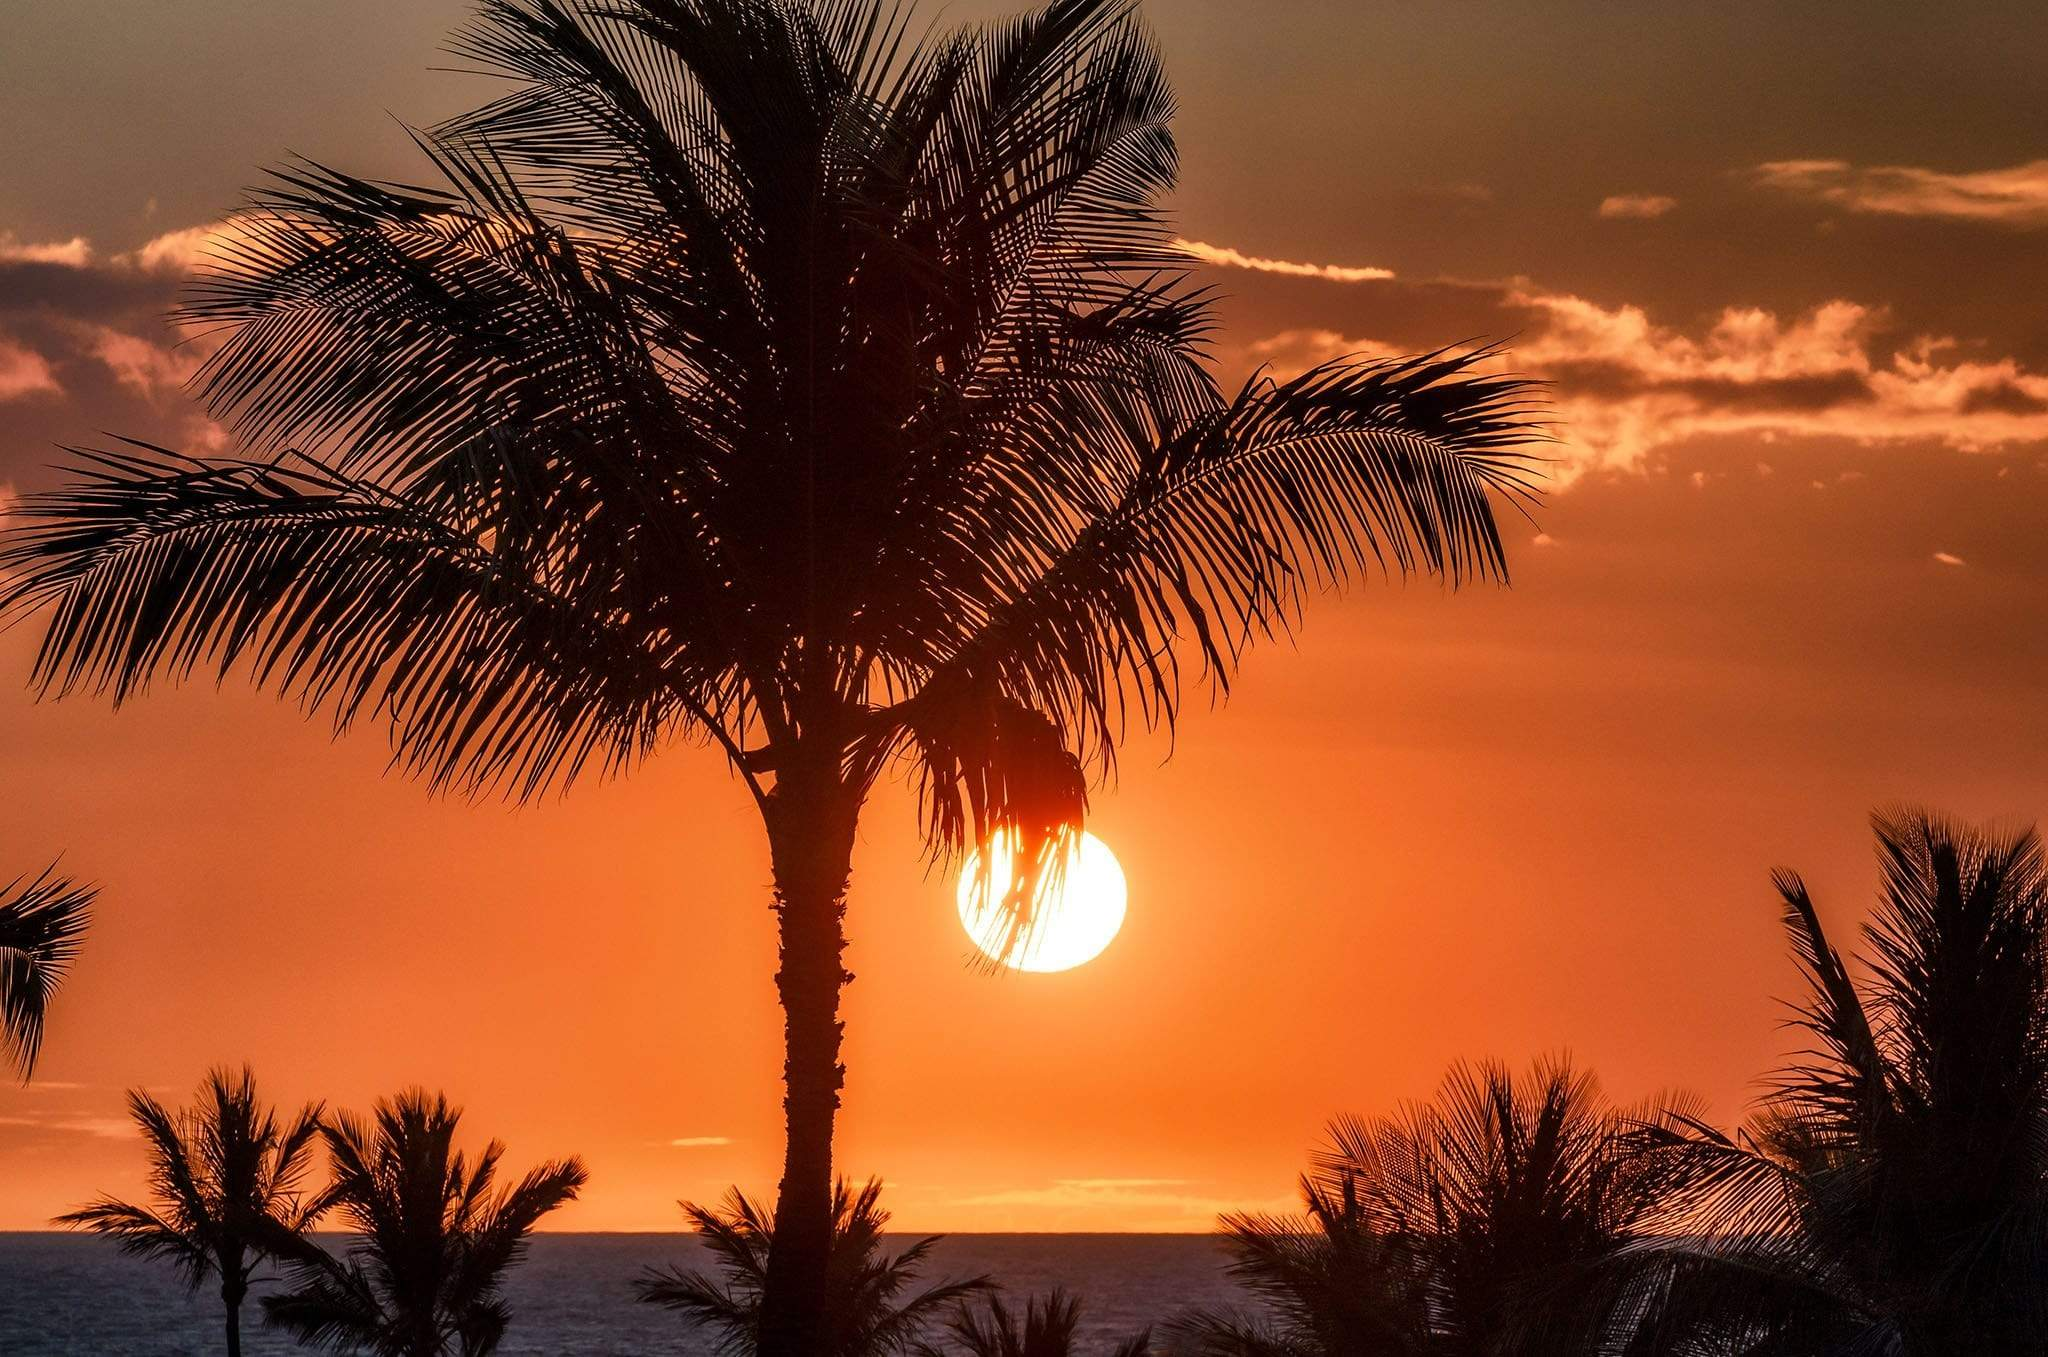 Orange Sunset with Palm Tree